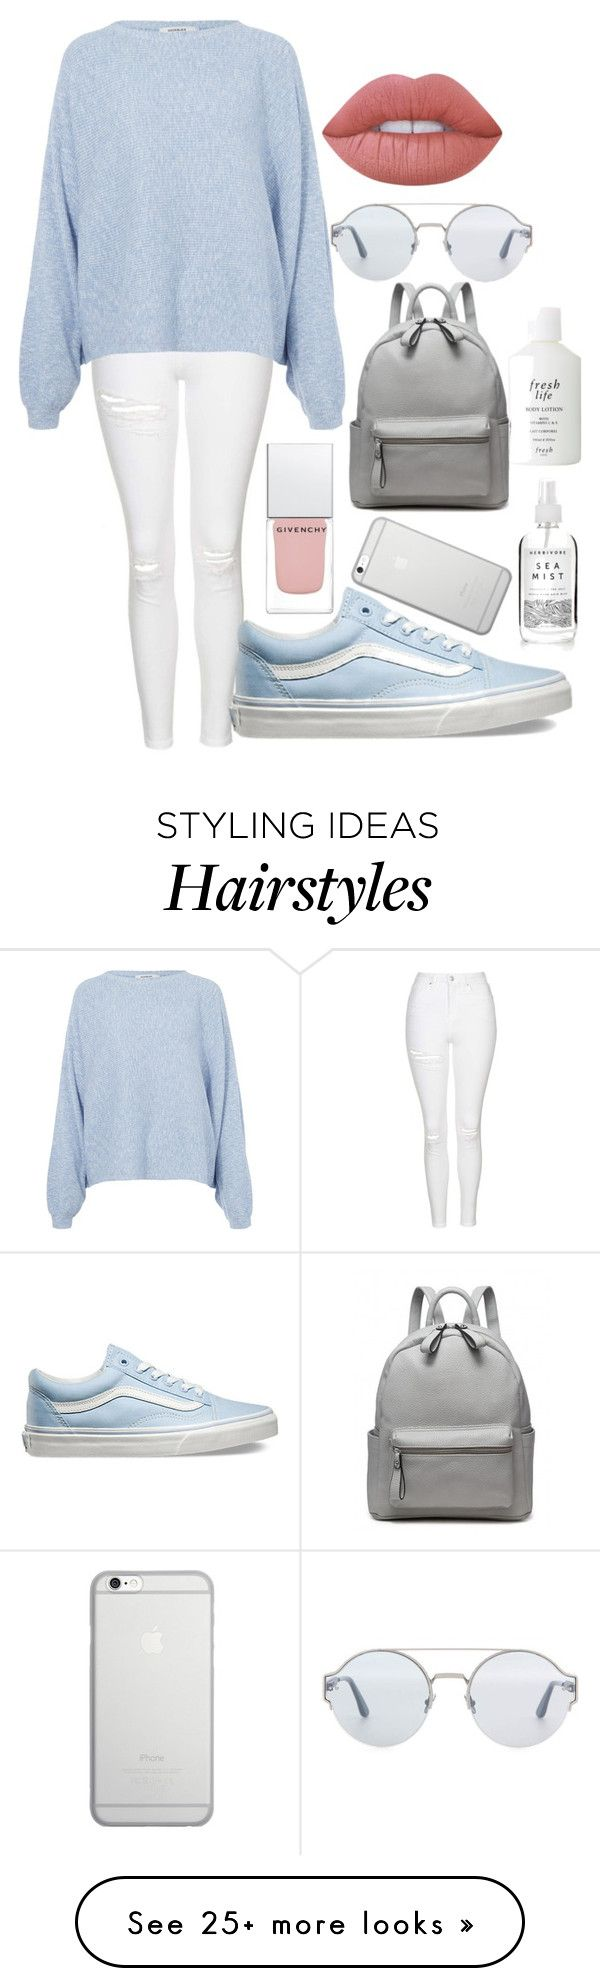 """Monday"" by jilld727 on Polyvore featuring Topshop, Rodebjer, Vans, Native Union, Lime Crime, Givenchy, Bottega Veneta and Fresh"